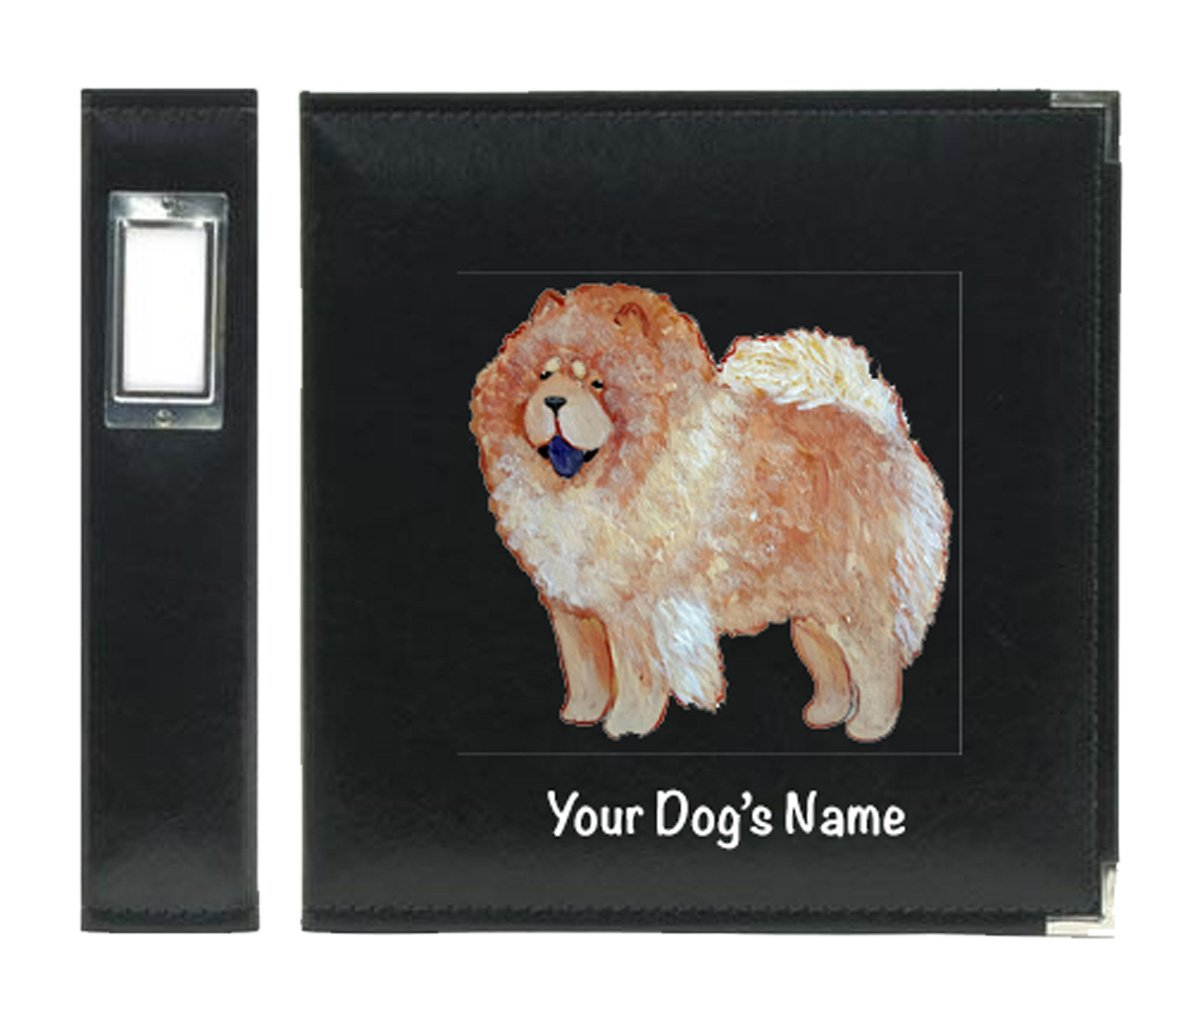 Chow Chow Cinnamon Dog Hand Painted Photo Album Scrapbook for Show Photos, Awards, Action Shots, Agility